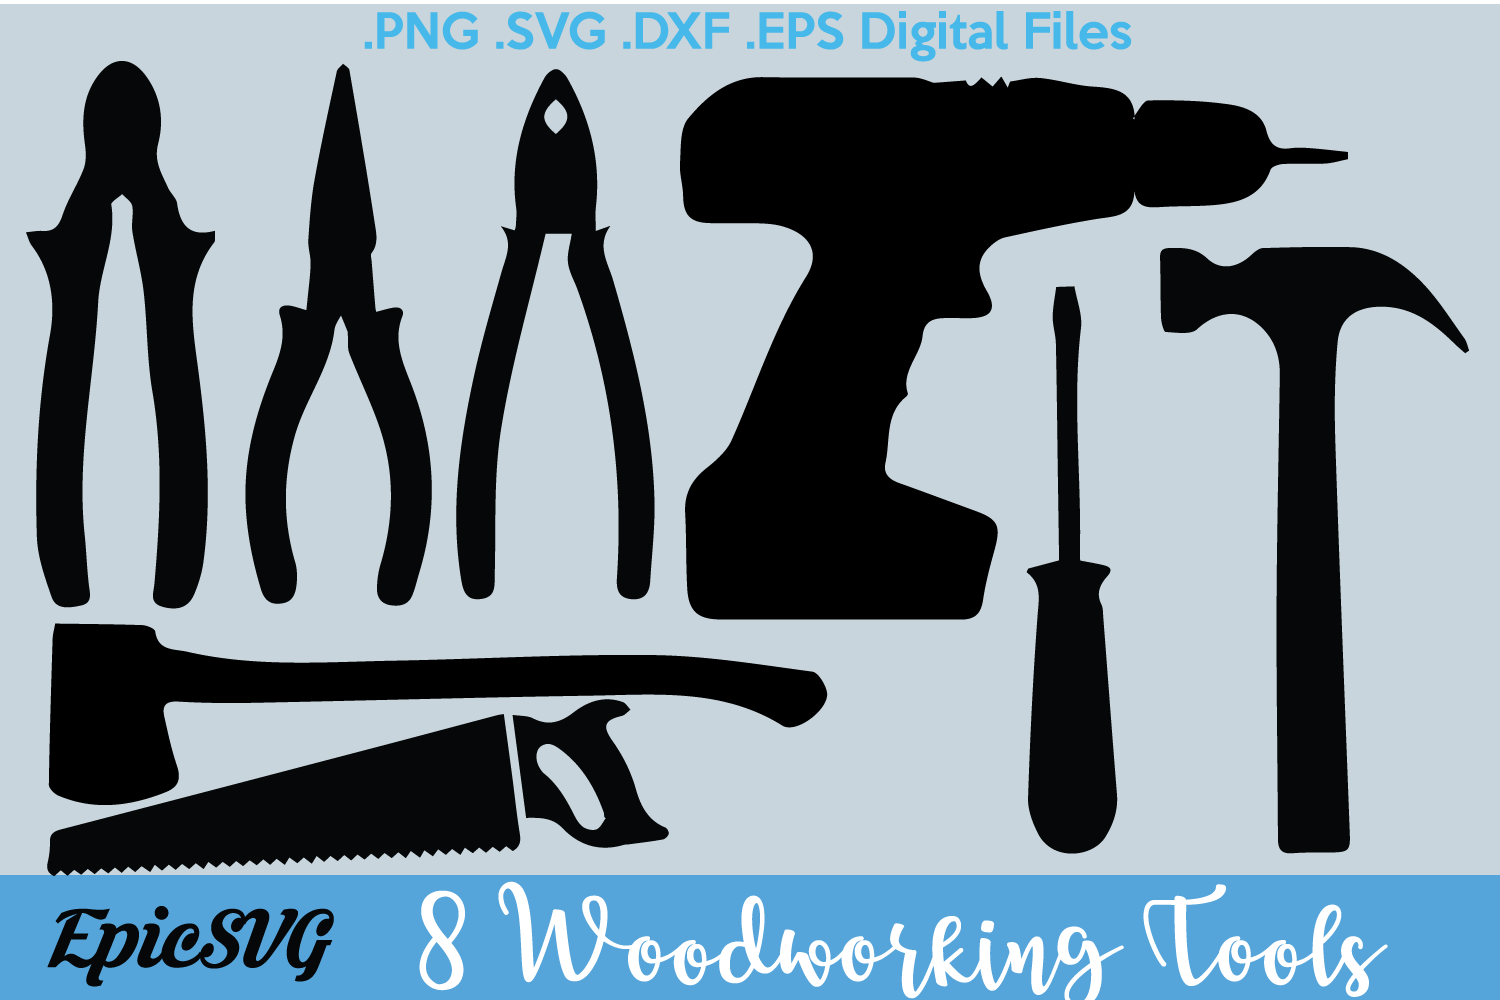 Woodworking Tools.